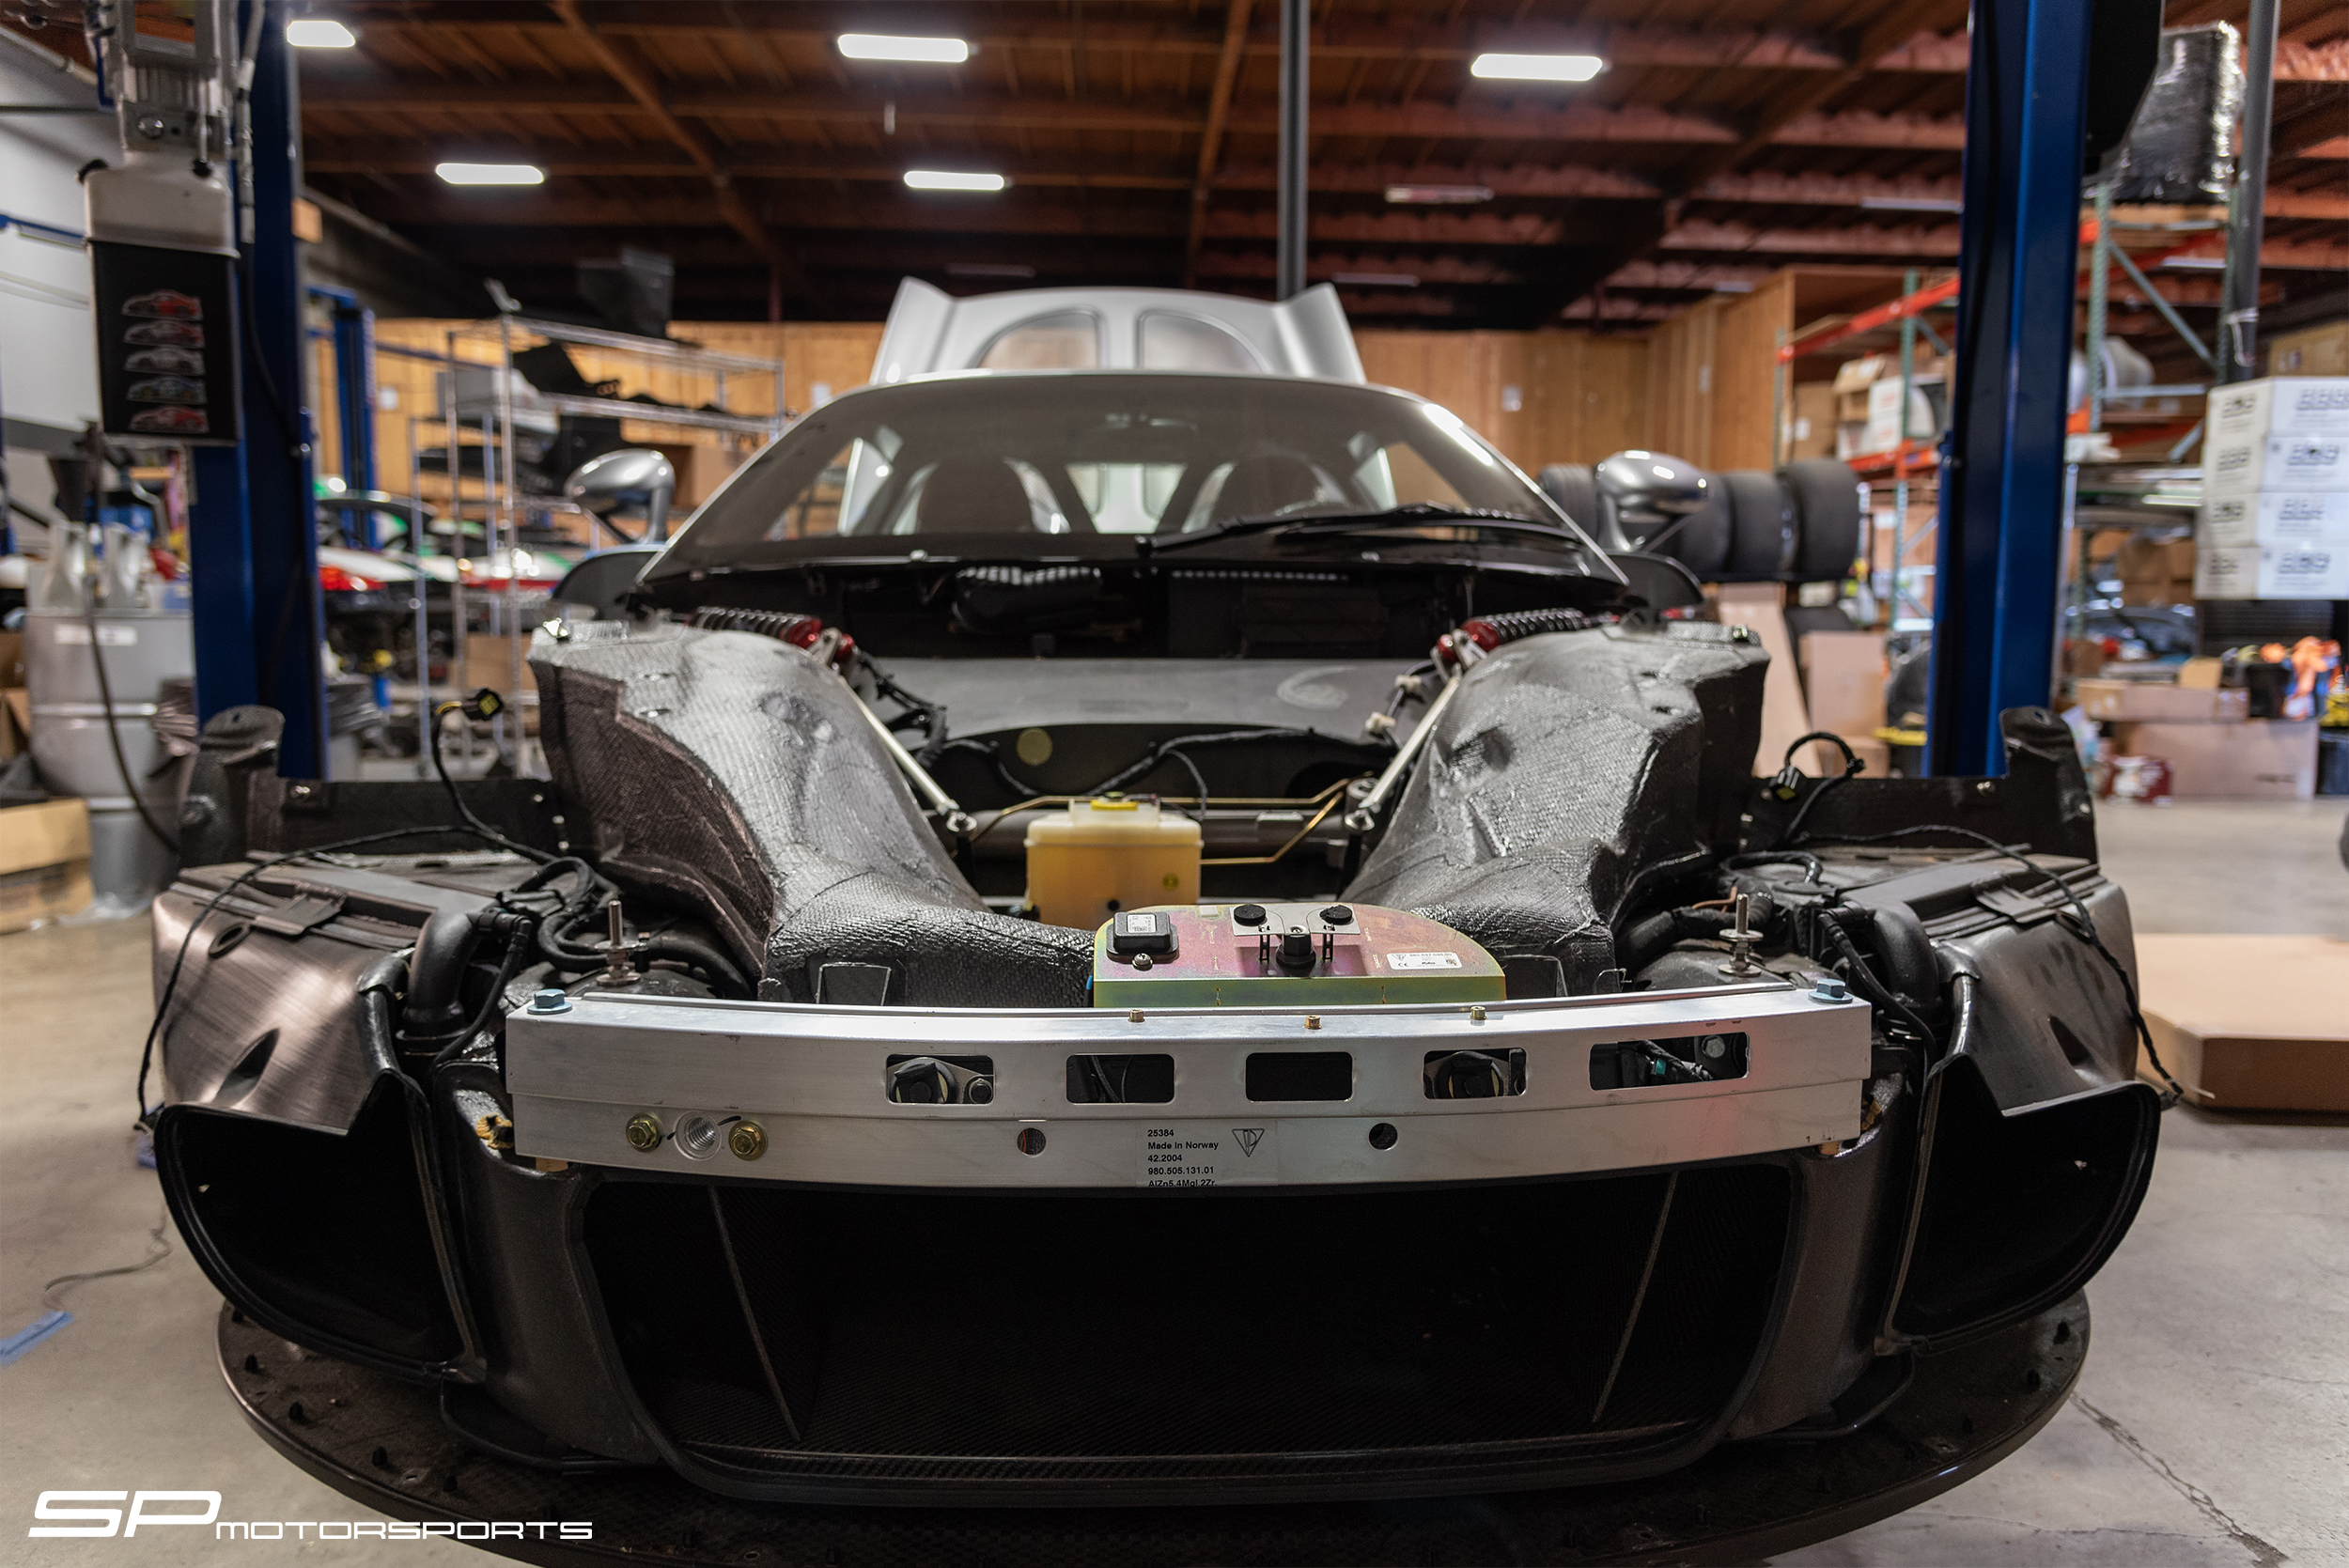 - Keeping your most prized possession road ready and safe can be daunting, we make it simple and easy. Our factory trained technicians ensure the highest quality of service whether is it a Carrera GT or a Macan.